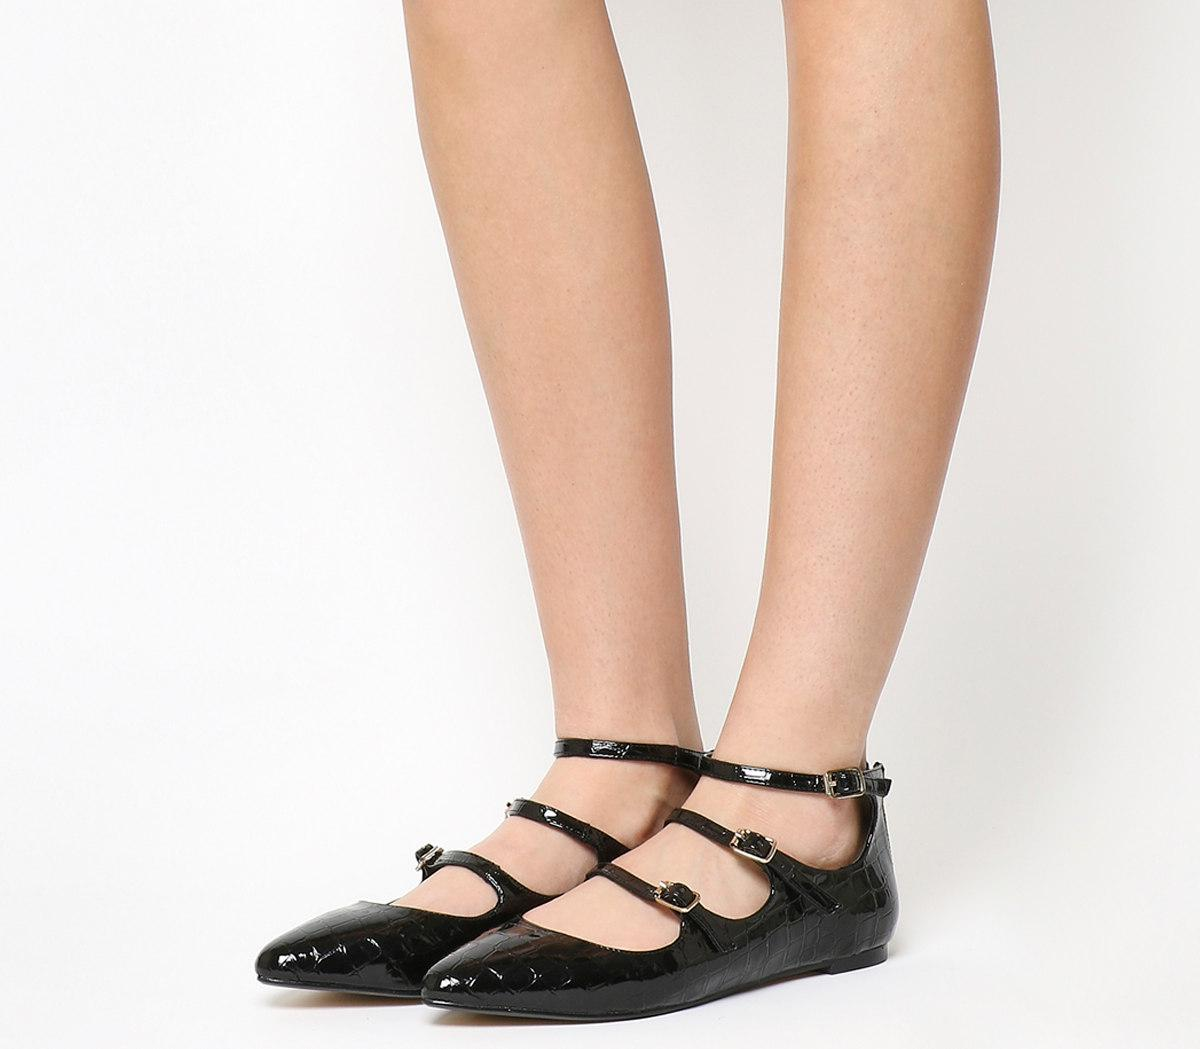 Lyst - Office Resist 3 Strap Mary Jane Flats in Black